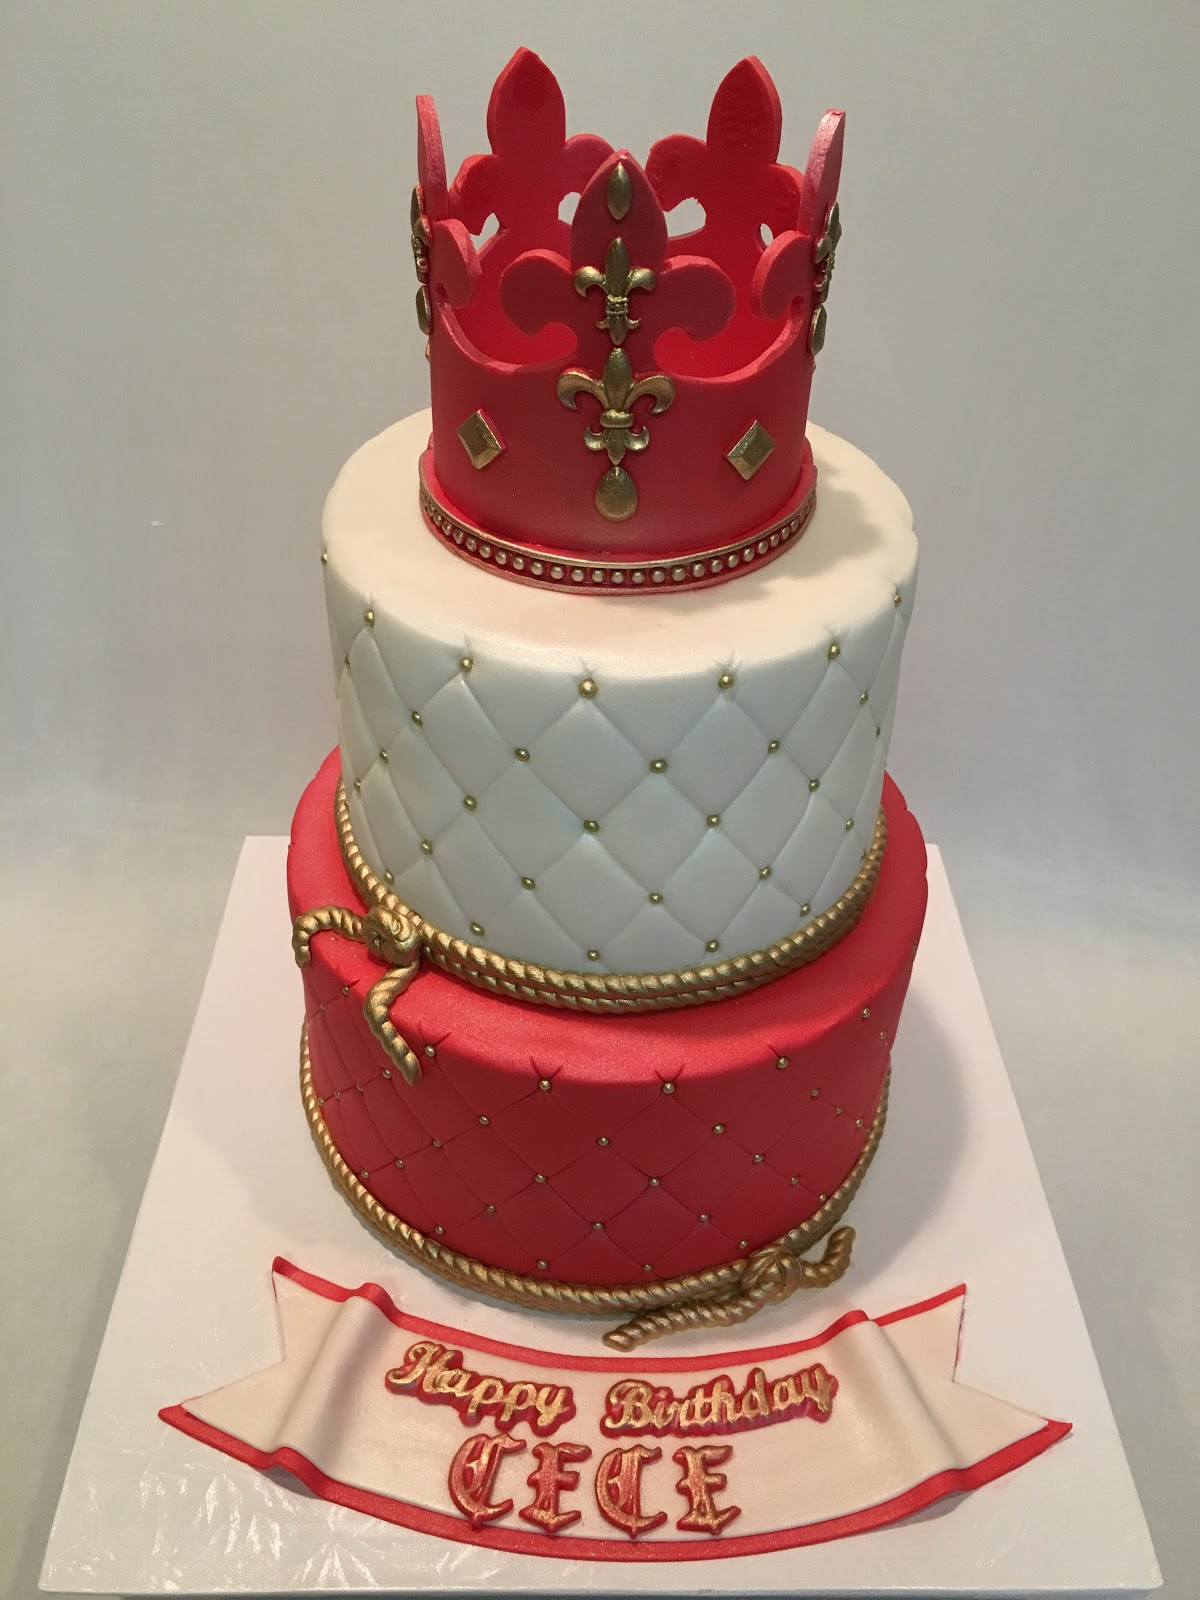 MyMoniCakes Fit for a king cake Red crown Royal Cake